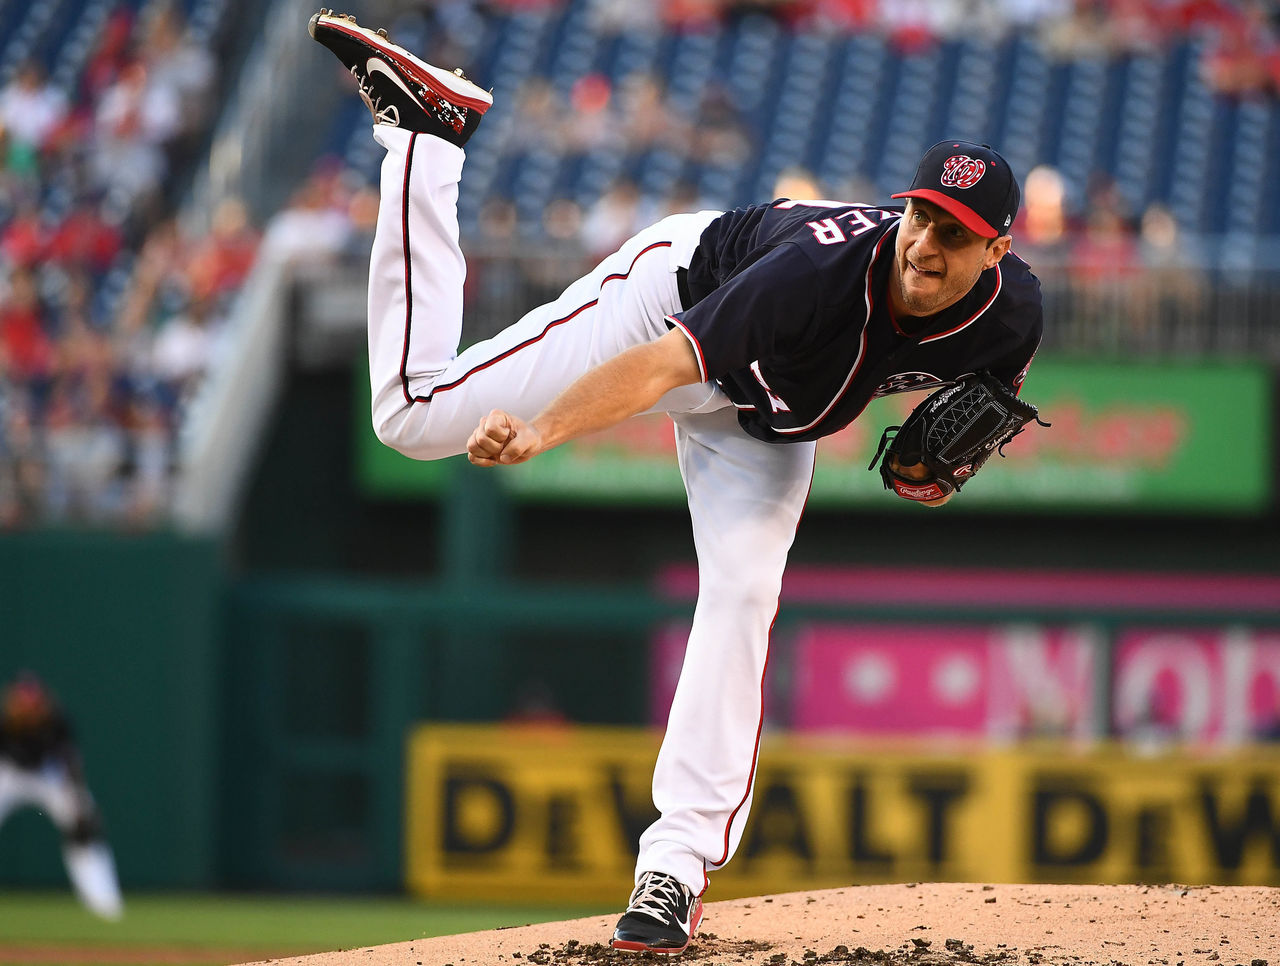 Cropped_2017-05-26t235129z_64751426_nocid_rtrmadp_3_mlb-san-diego-padres-at-washington-nationals